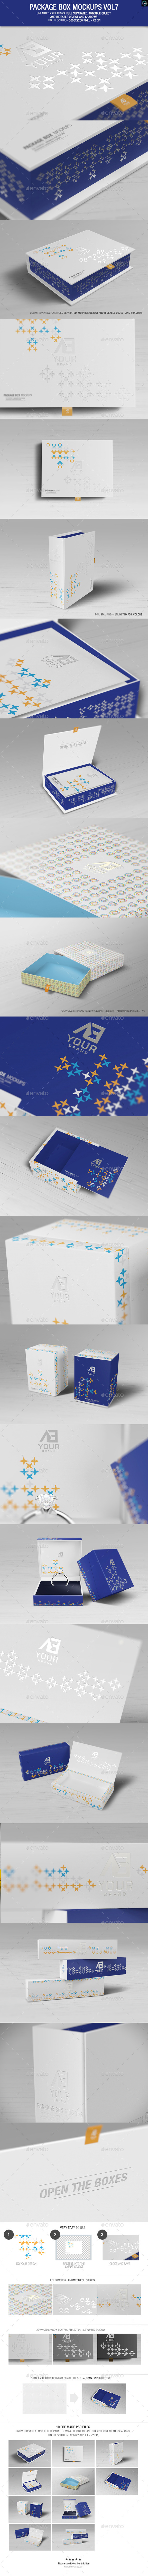 Package Box Mockups Vol7 - Packaging Product Mock-Ups